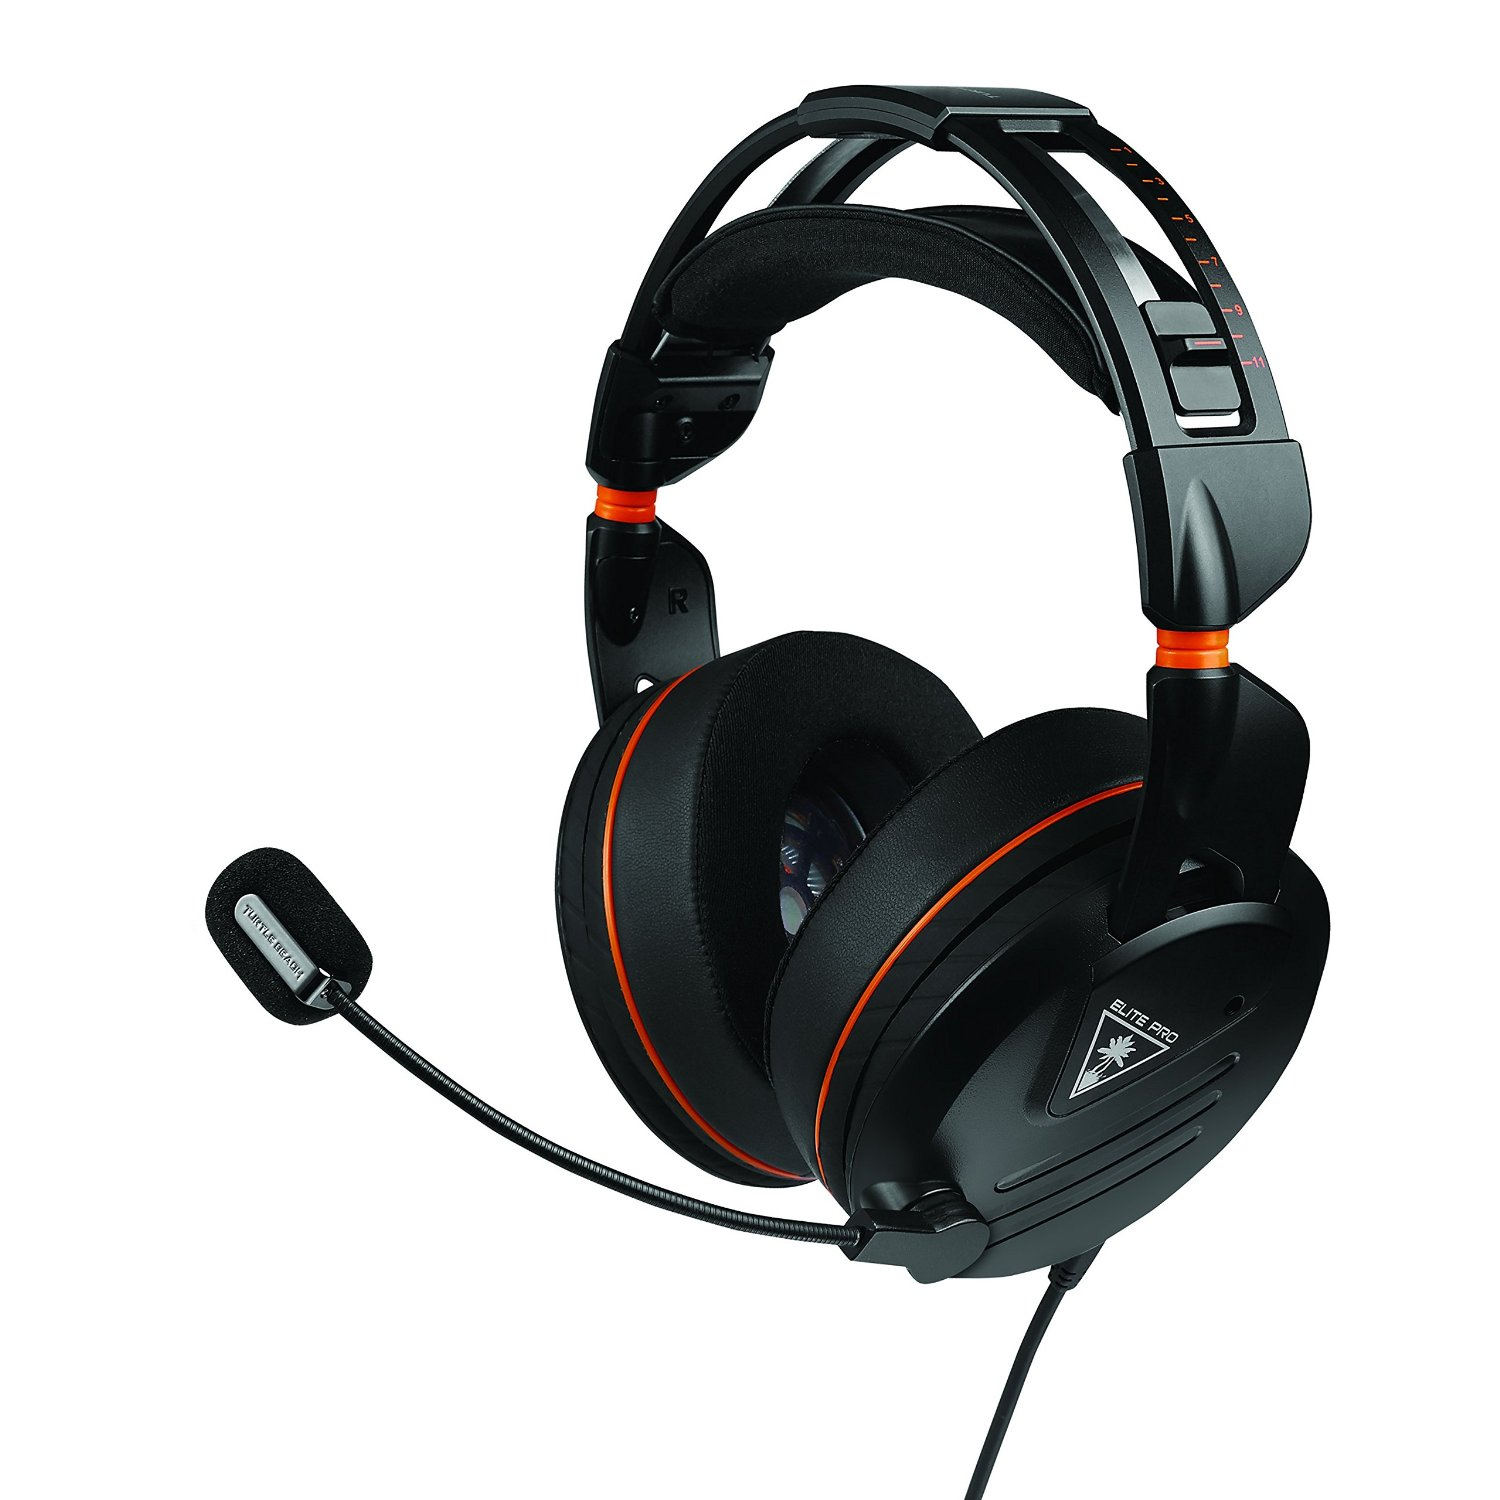 Elite Pro Tournament Gaming Headset and